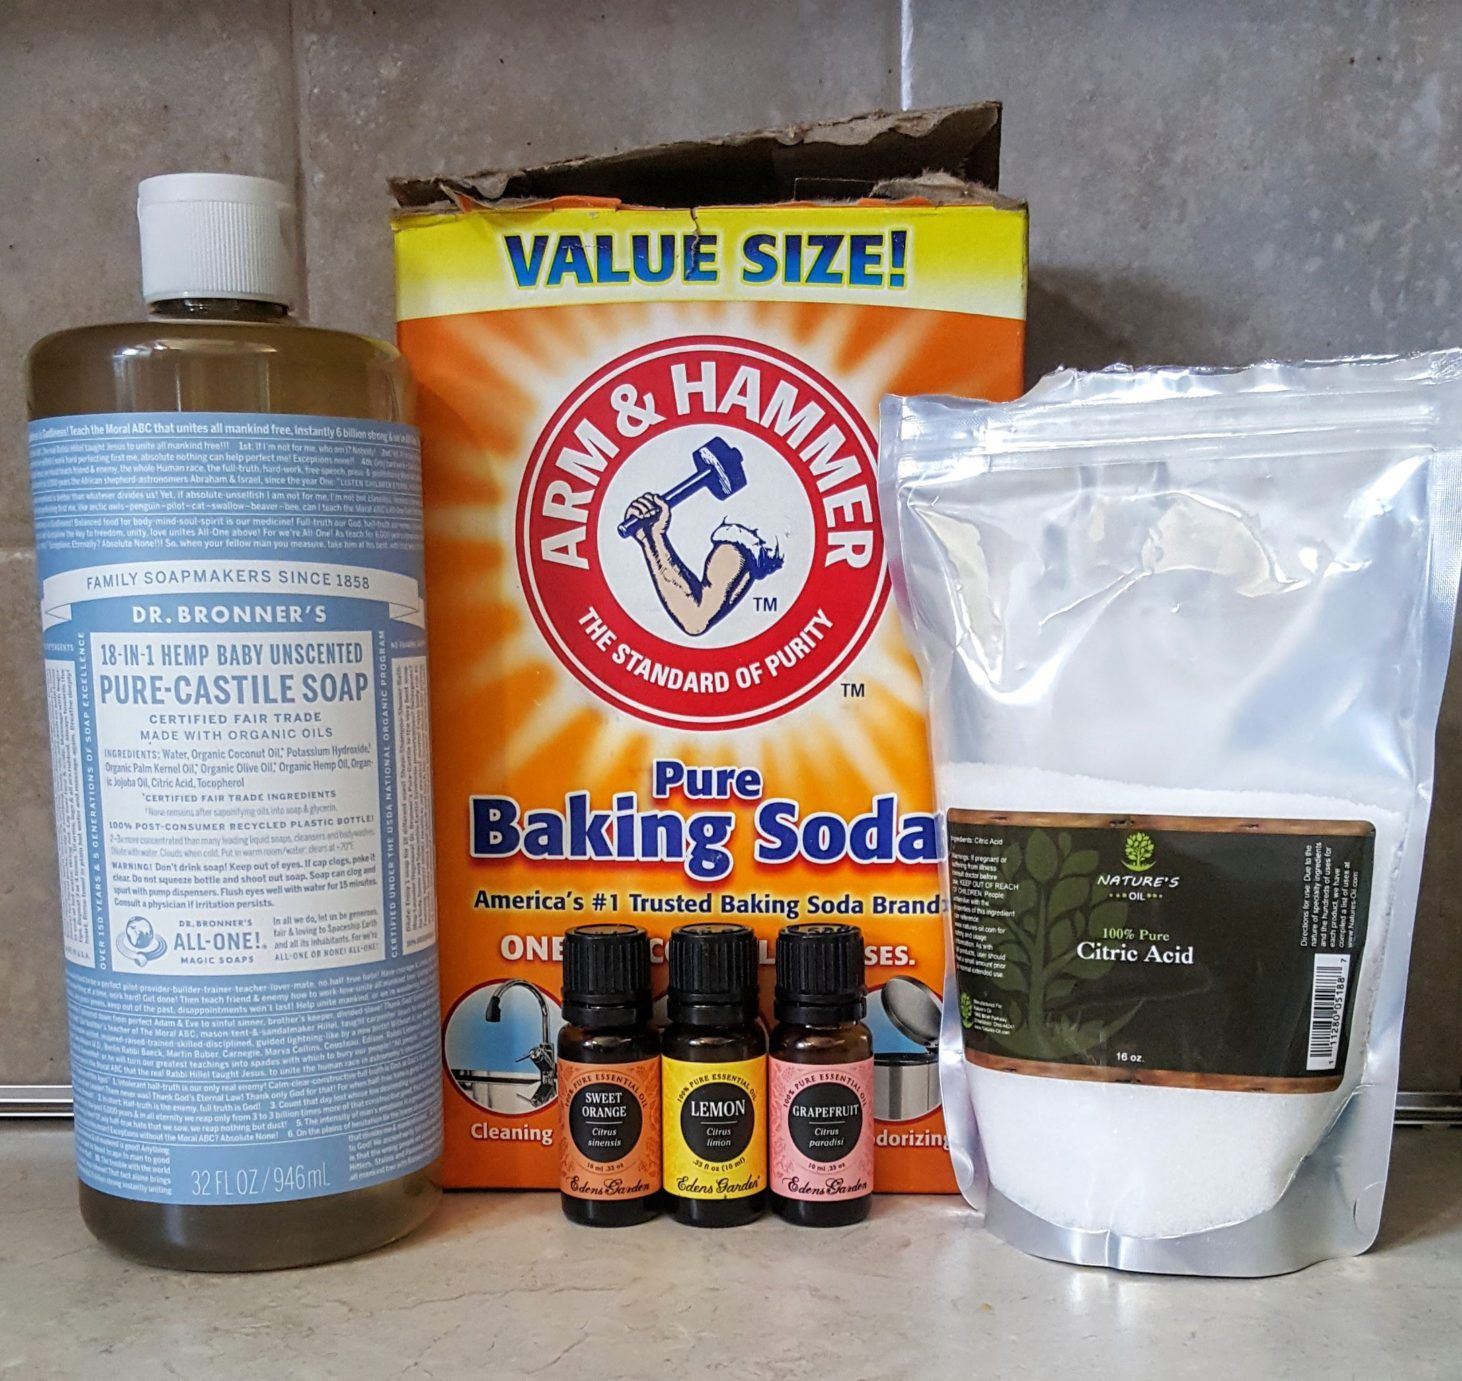 Diy Natural Chemical Free Dishwasher Detergent Castile Soap Washing Sod Chemical Free Dishwasher Detergent Dishwasher Detergent Homemade Dishwasher Detergent